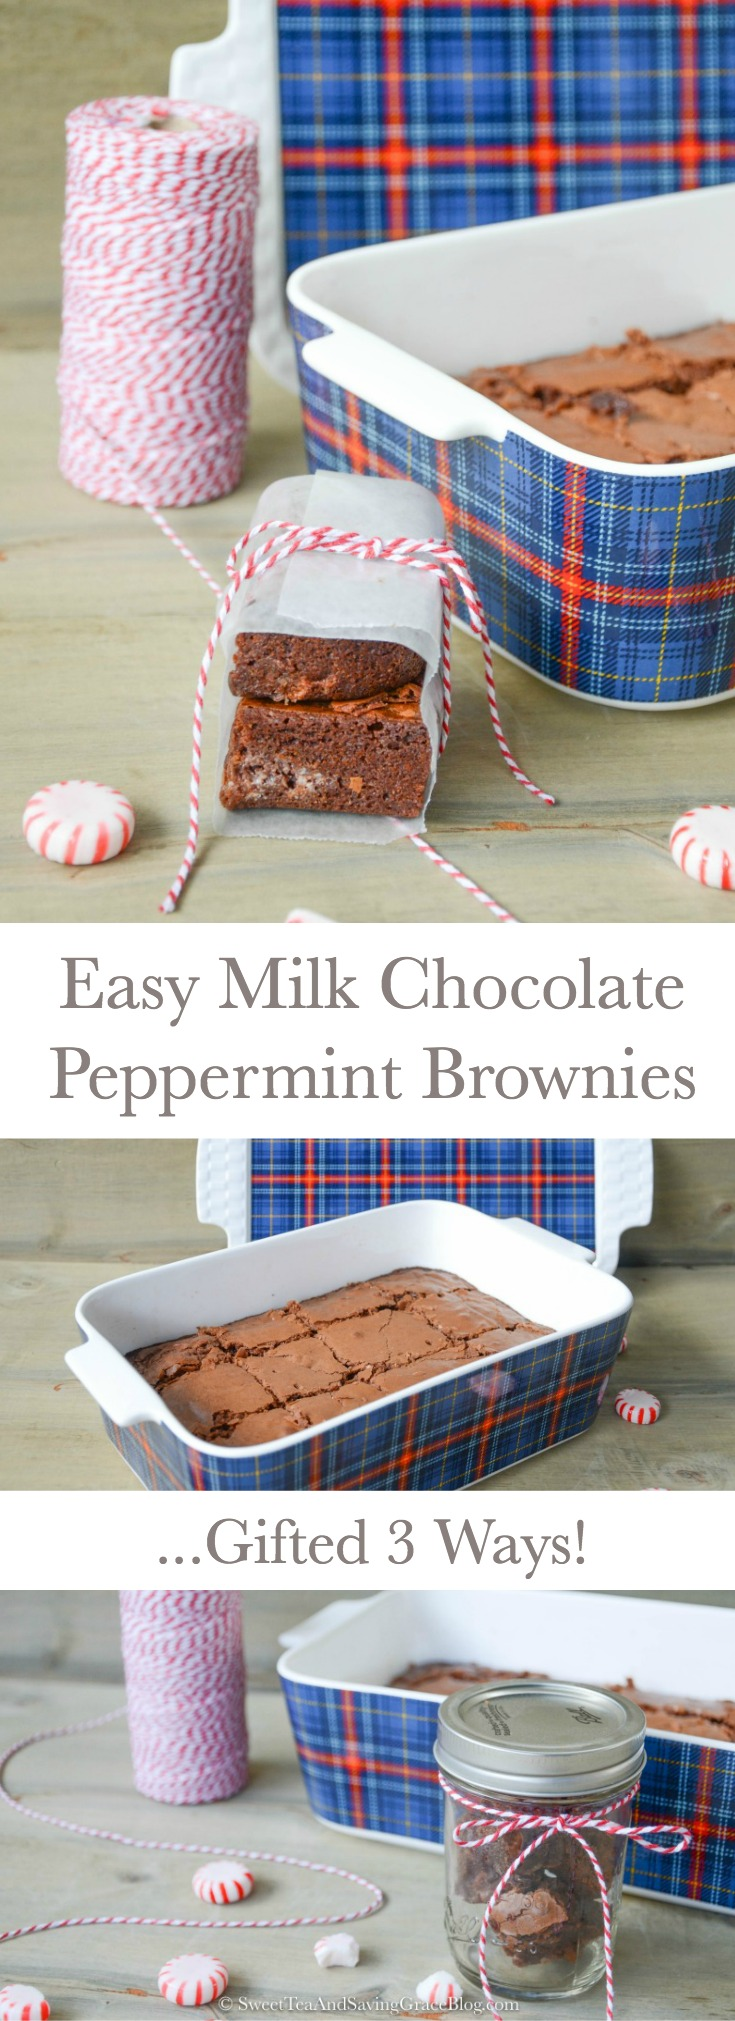 Delicious treats make great gifts at Christmas time, and they don't have to take a ton of time or money! These easy milk chocolate peppermint brownies start with boxed brownie mix, but turn out so scrumptious you'll want to make a batch to keep for yourself! Plus I'm showing you 3 ways to gift brownies for Christmas, including in a mason jar!